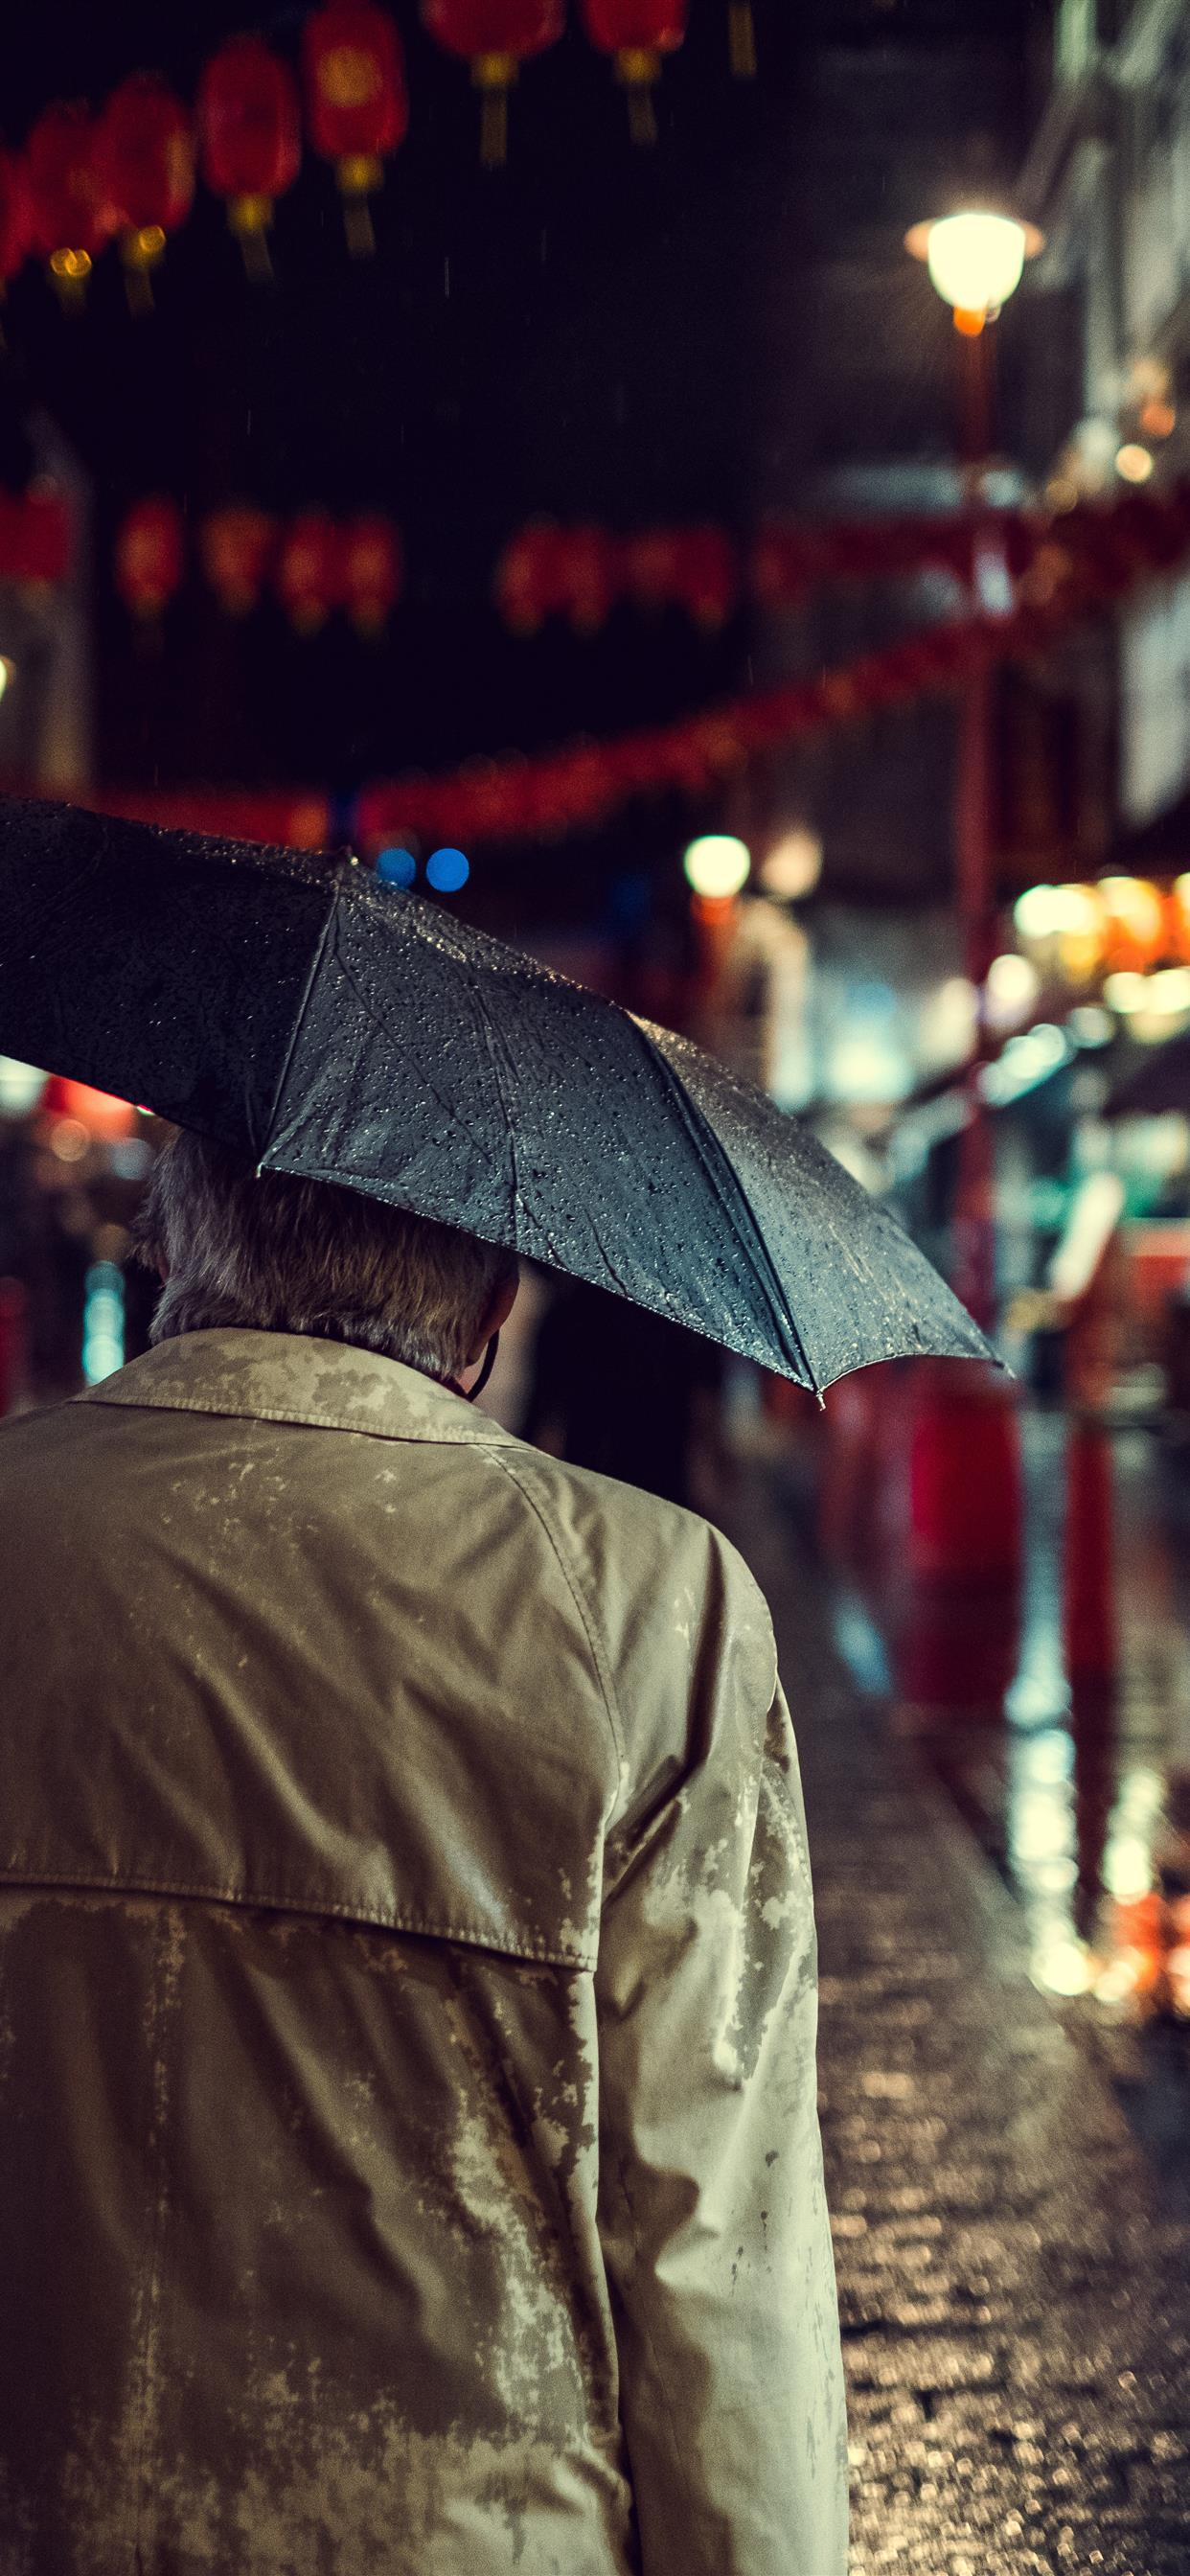 Chinatown Rain Iphone Wallpapers Free Download